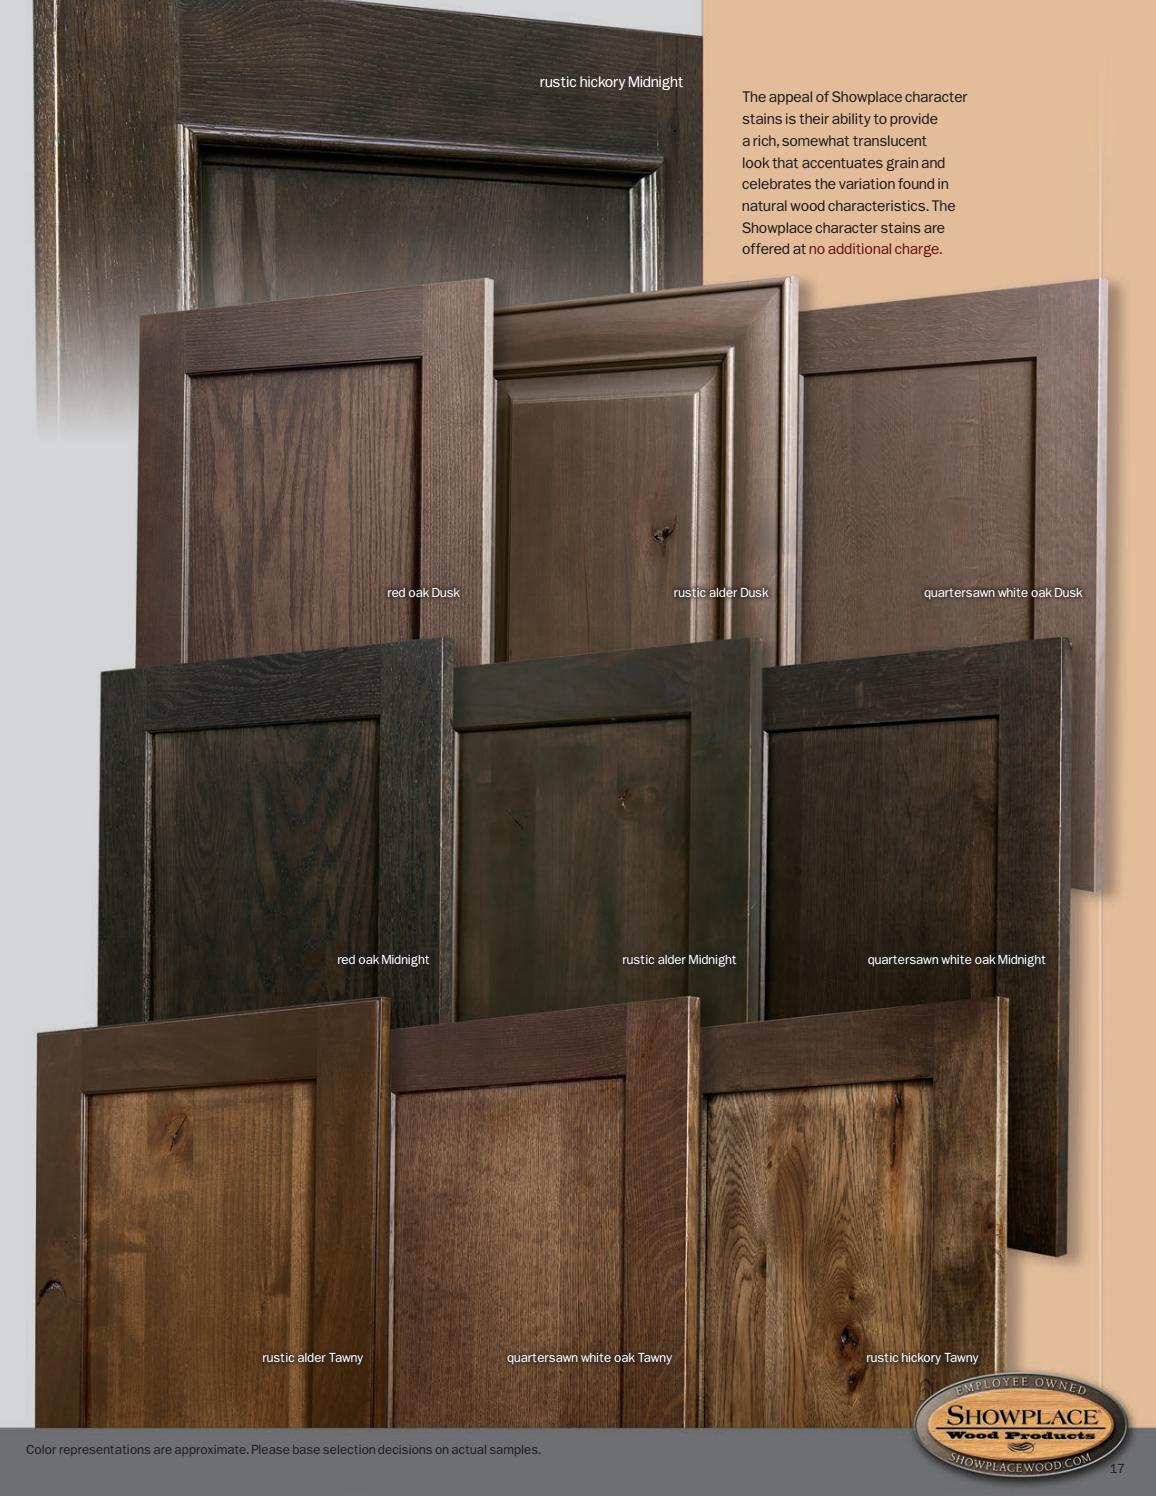 Showplace cabinetry Styles Woods  Finishes booklet by